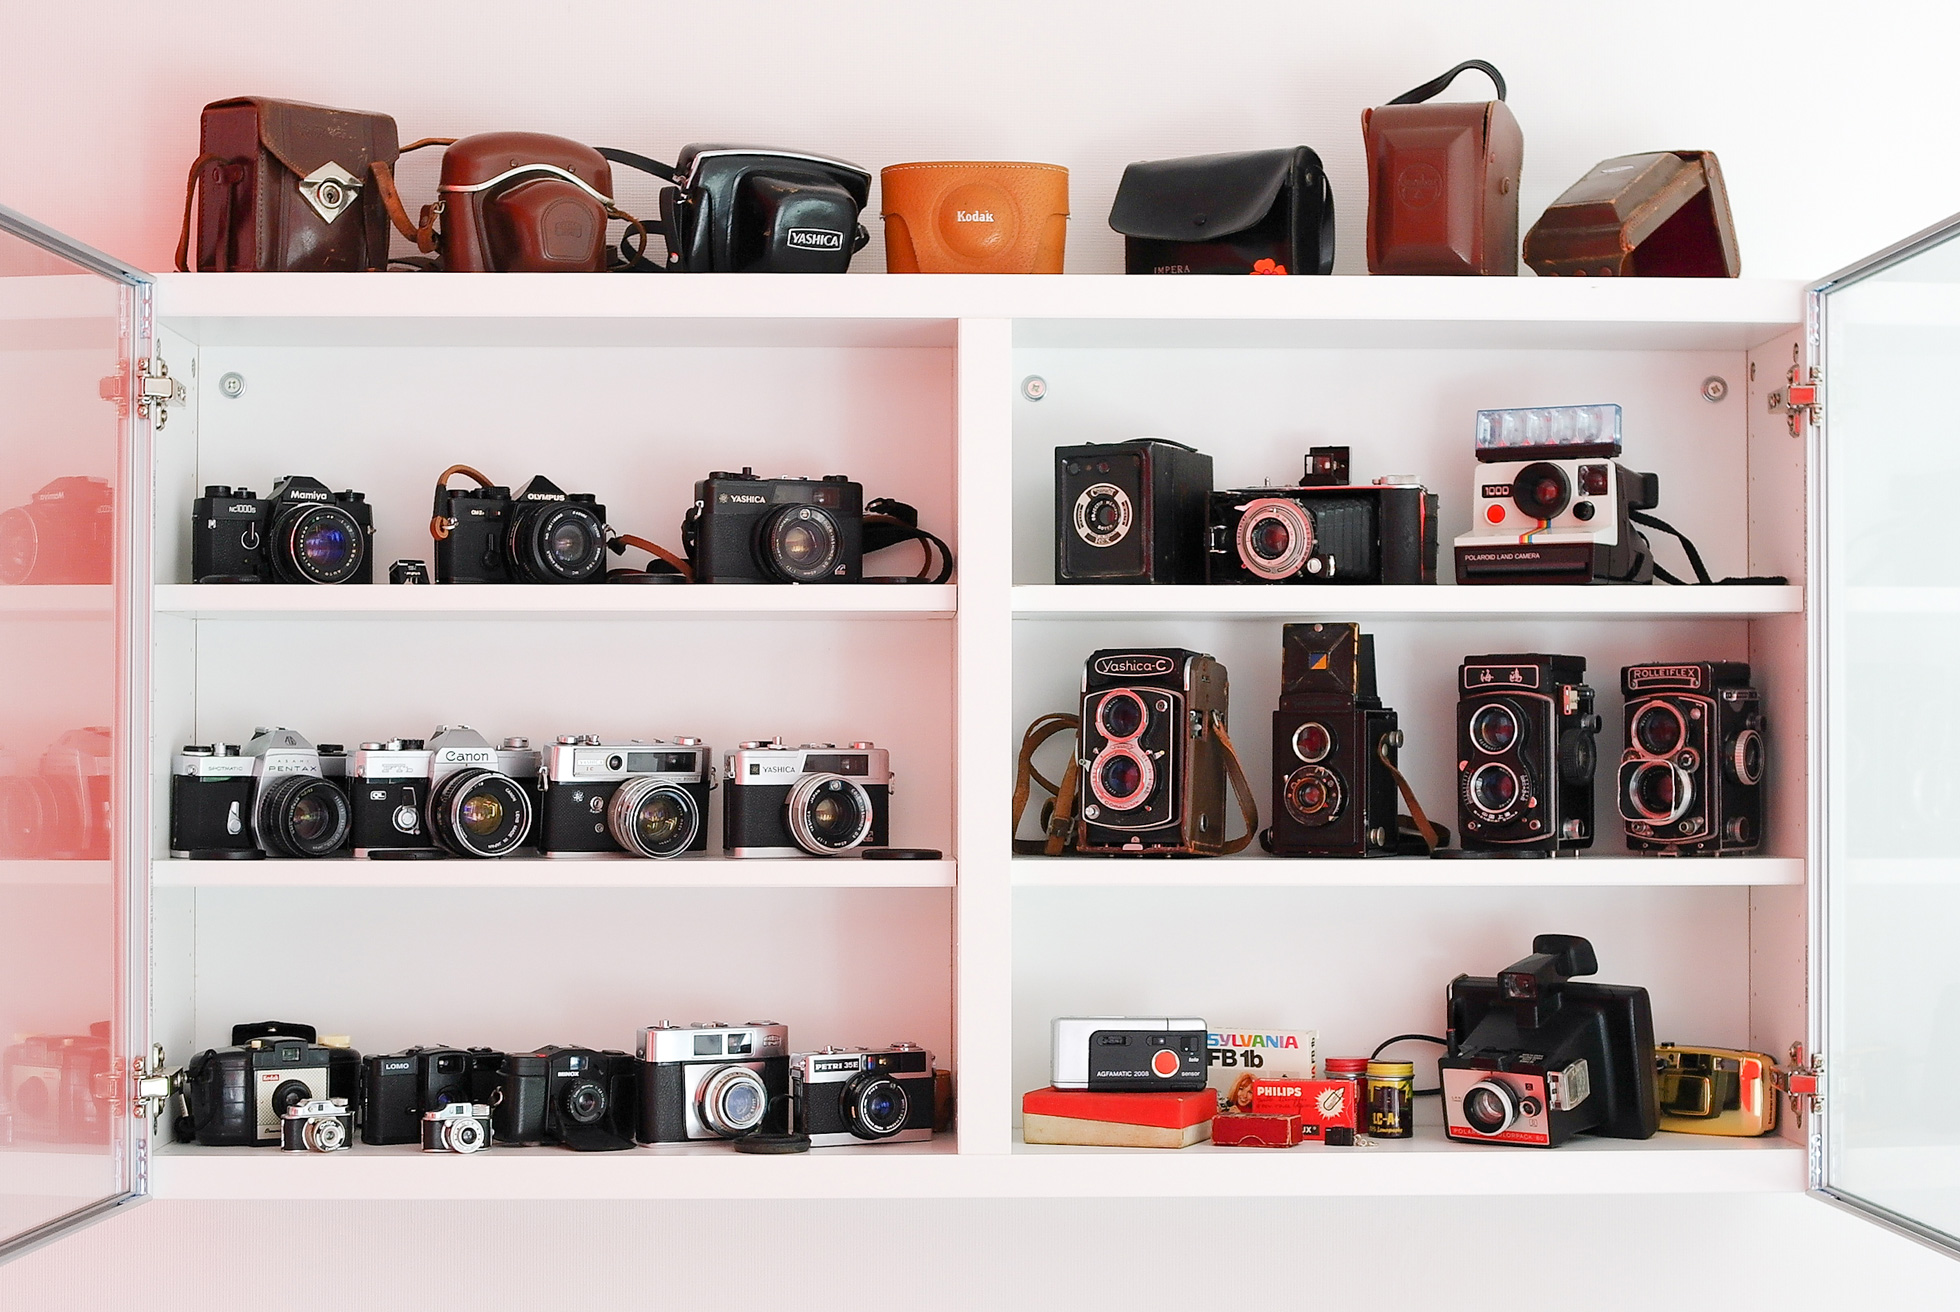 Camera collection displayed on shelves